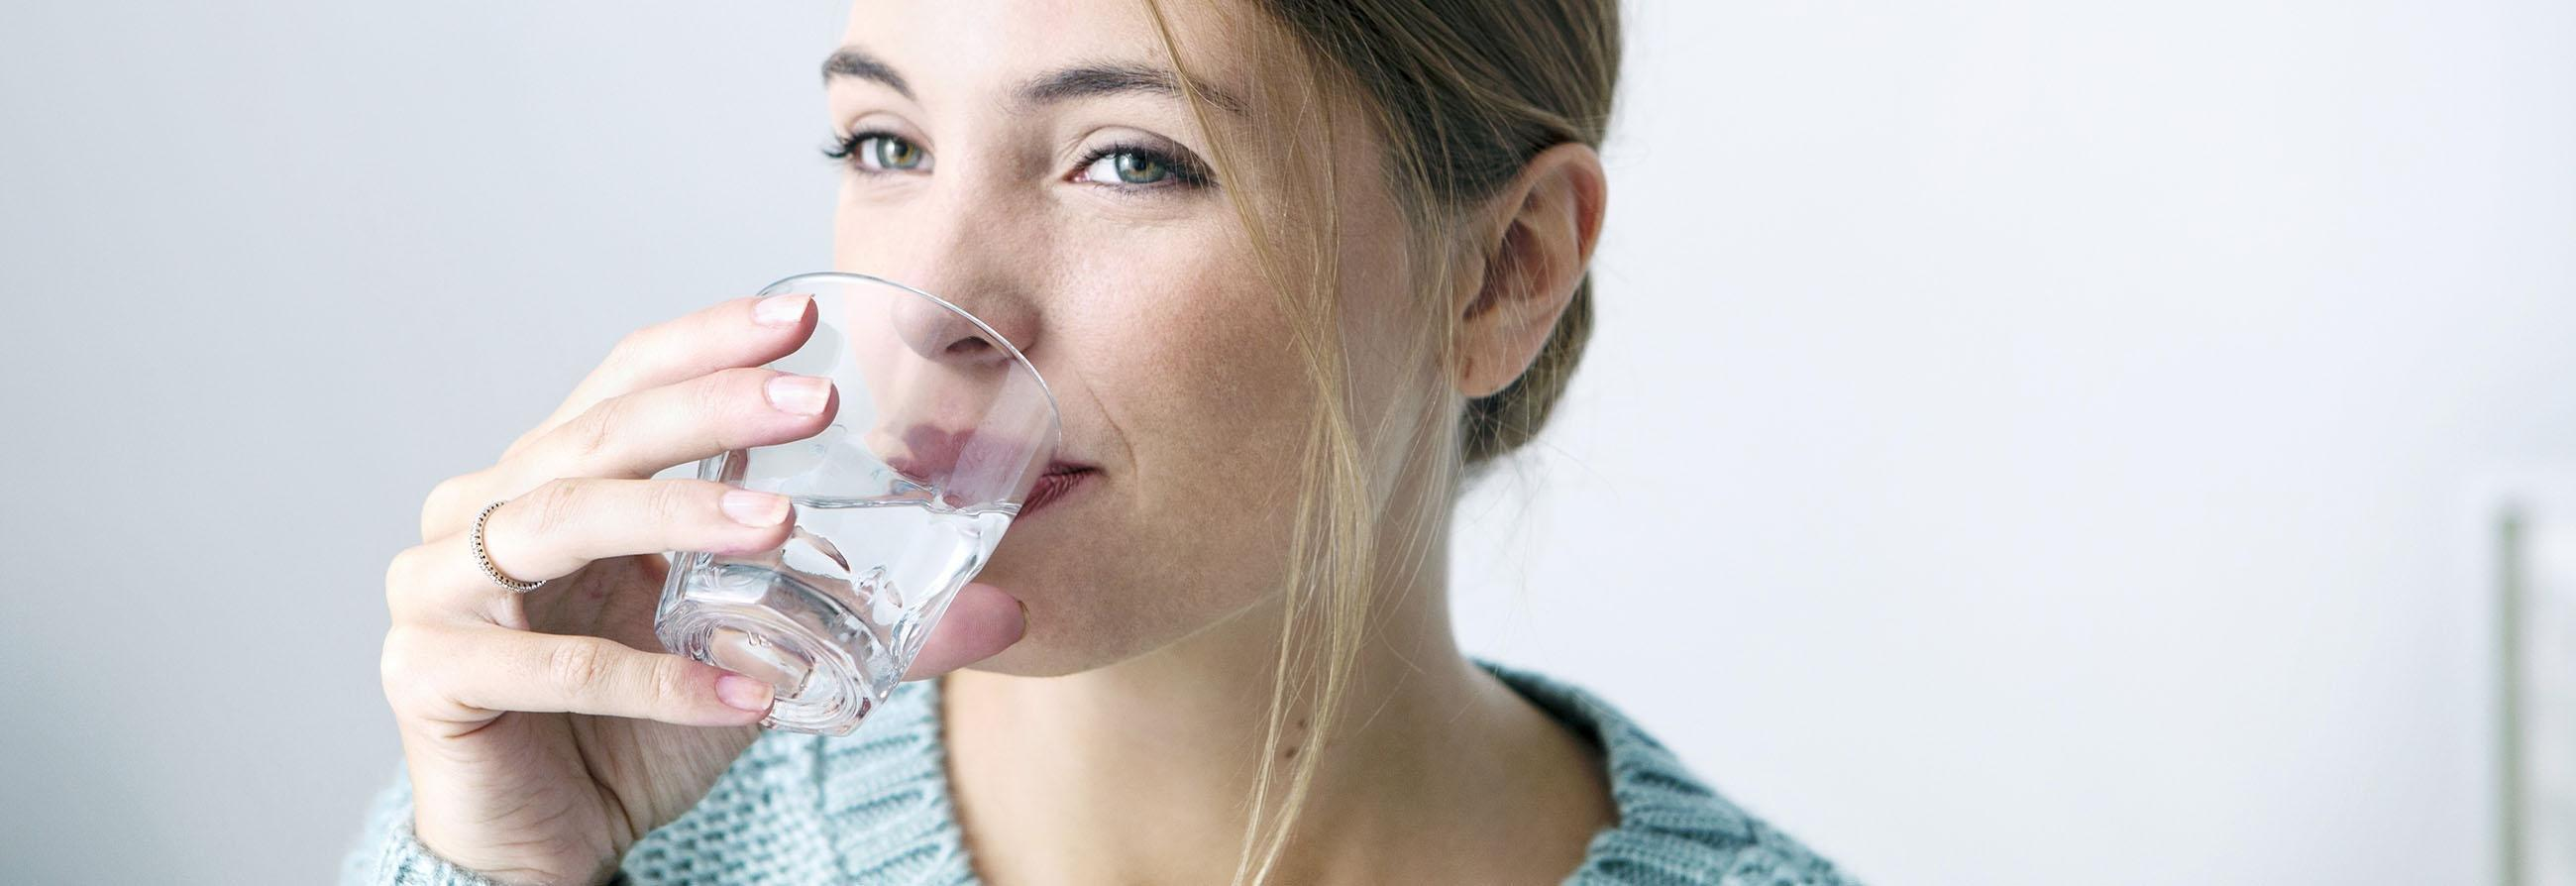 On World Diabetes Day, Nestlé Waters raises awareness on healthy hydration habits